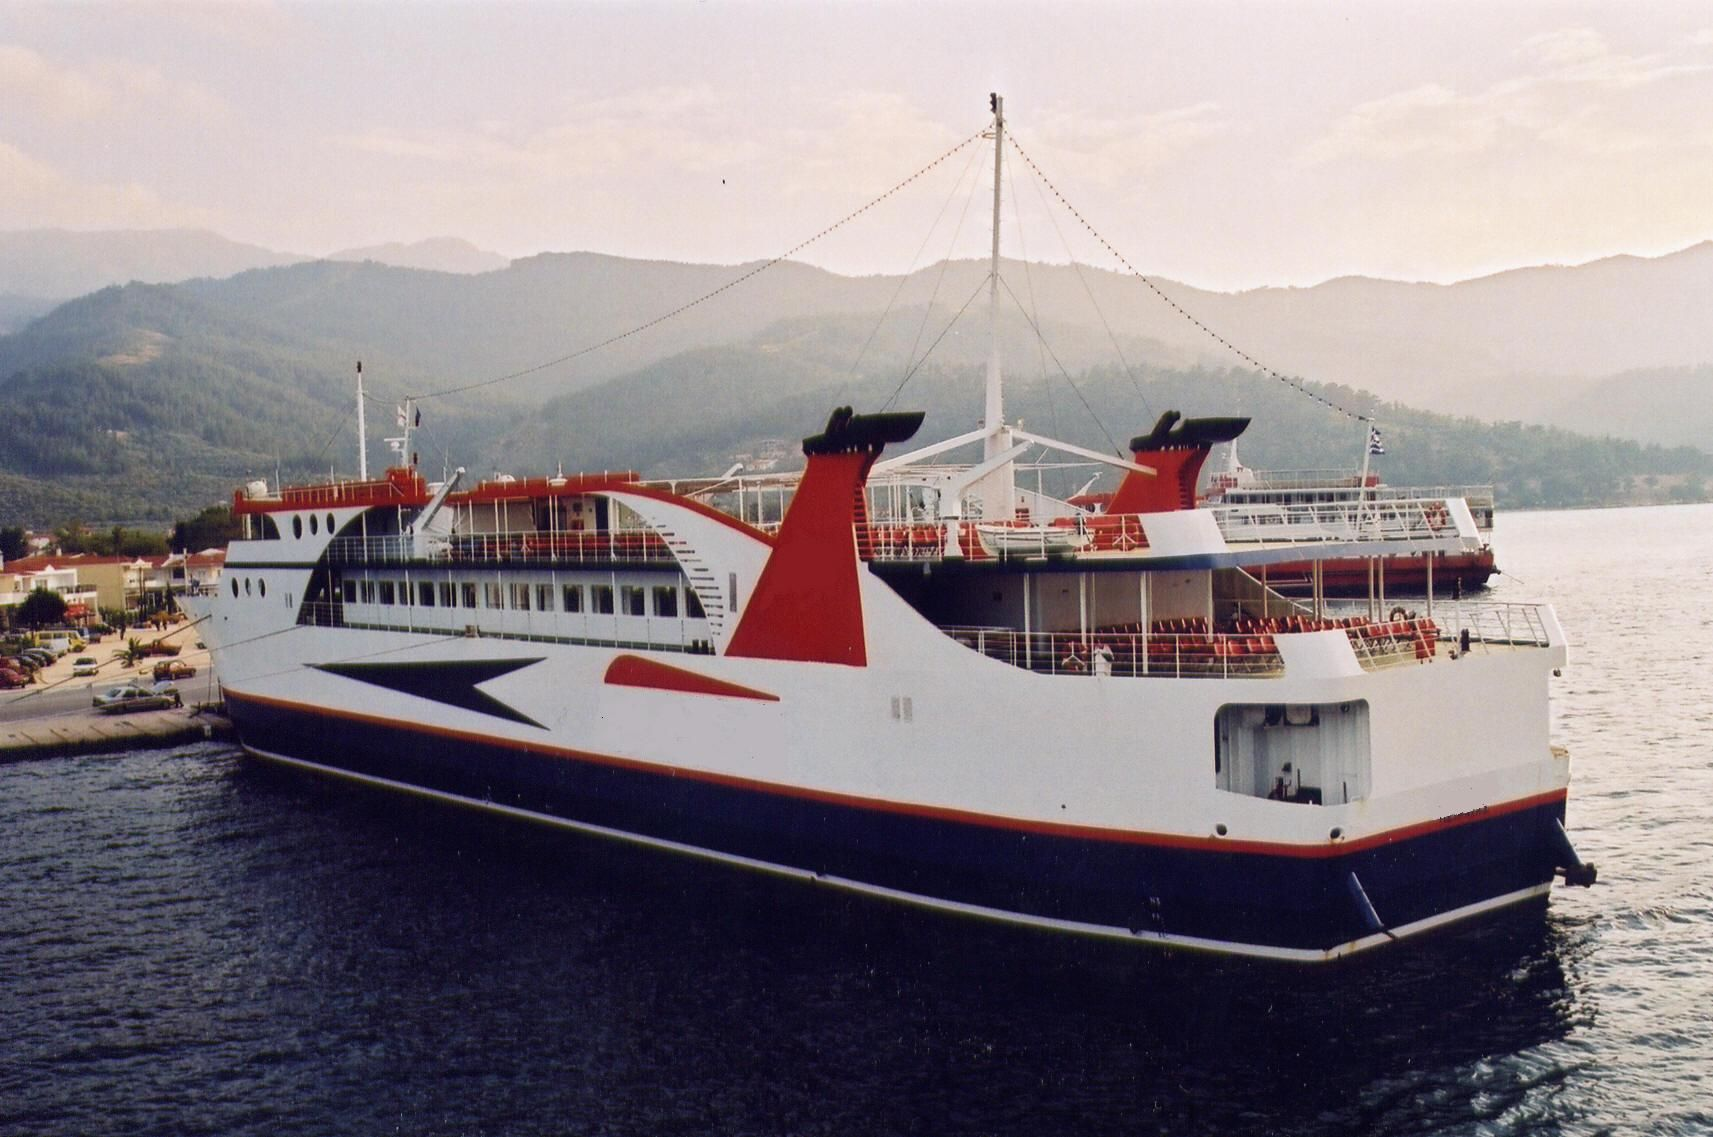 Day Ferries   Day Ferries for Sale   Travel, Boat, Cruise